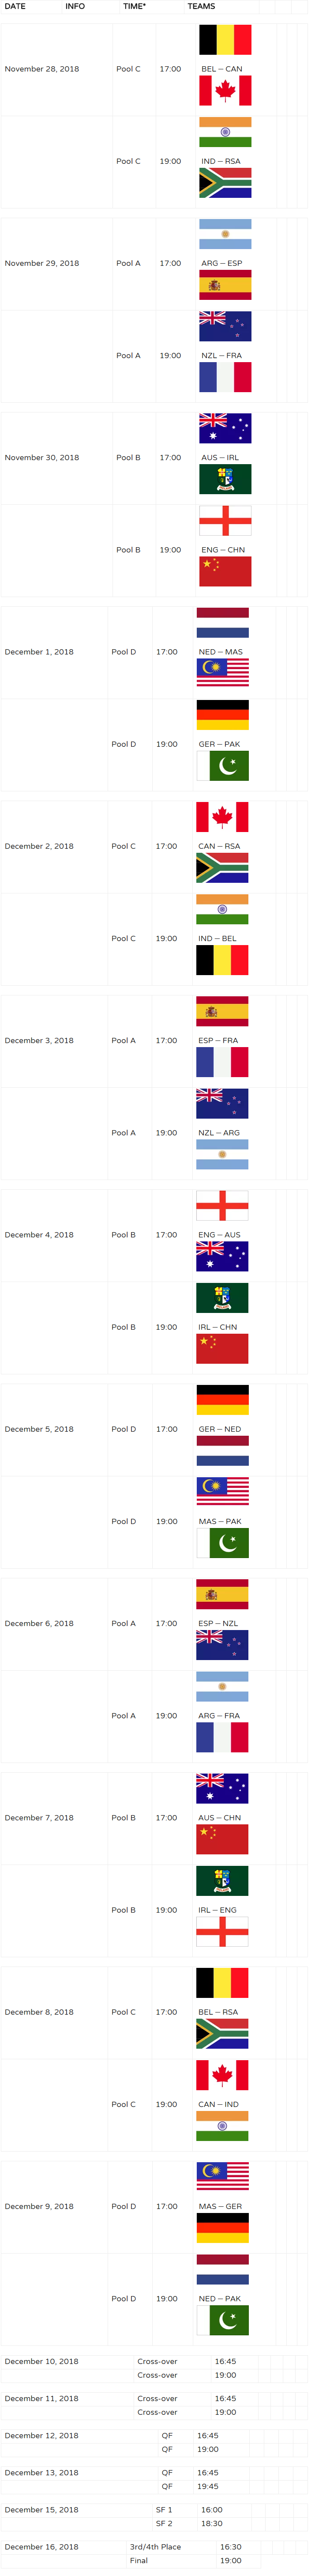 Men World Cup Schedule